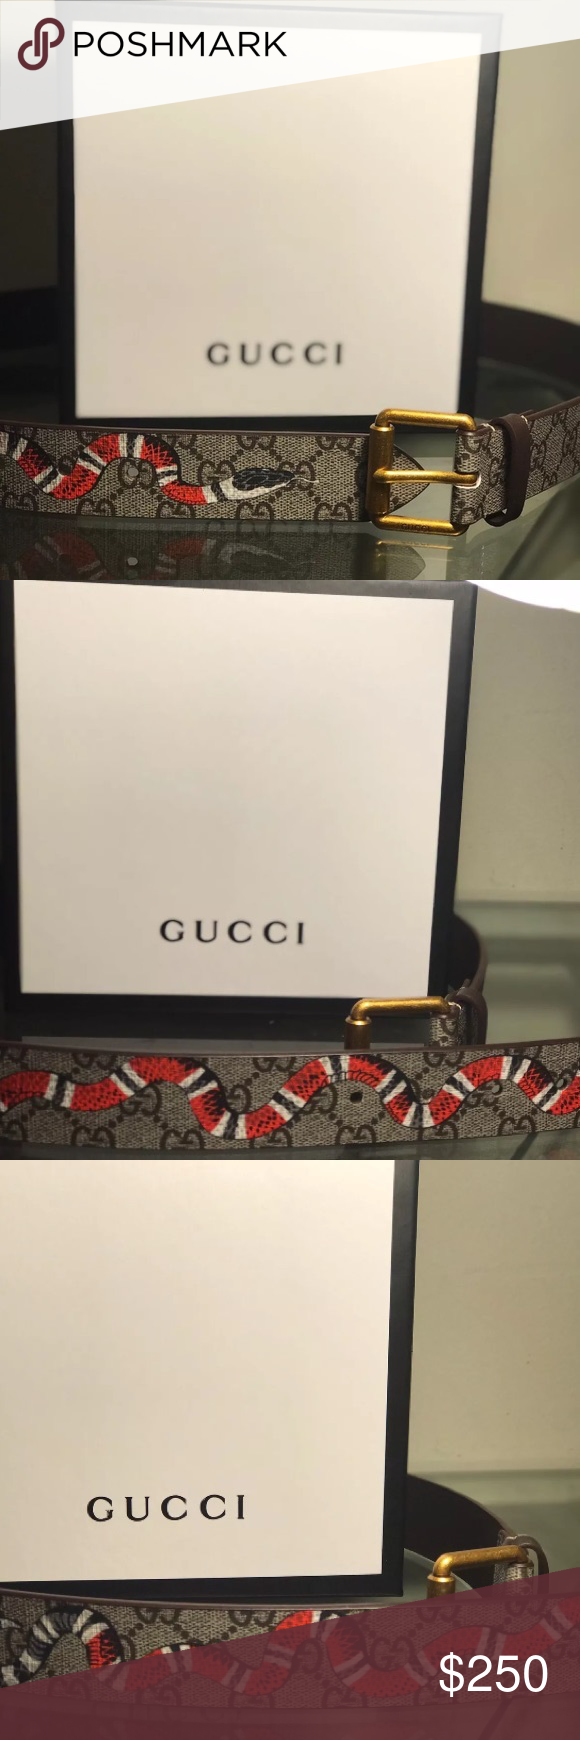 Authentic Gucci Snake Print GG Supreme belt New with tags, if you need to know more following information about the belt, just contact me :) Gucci Accessories Belts